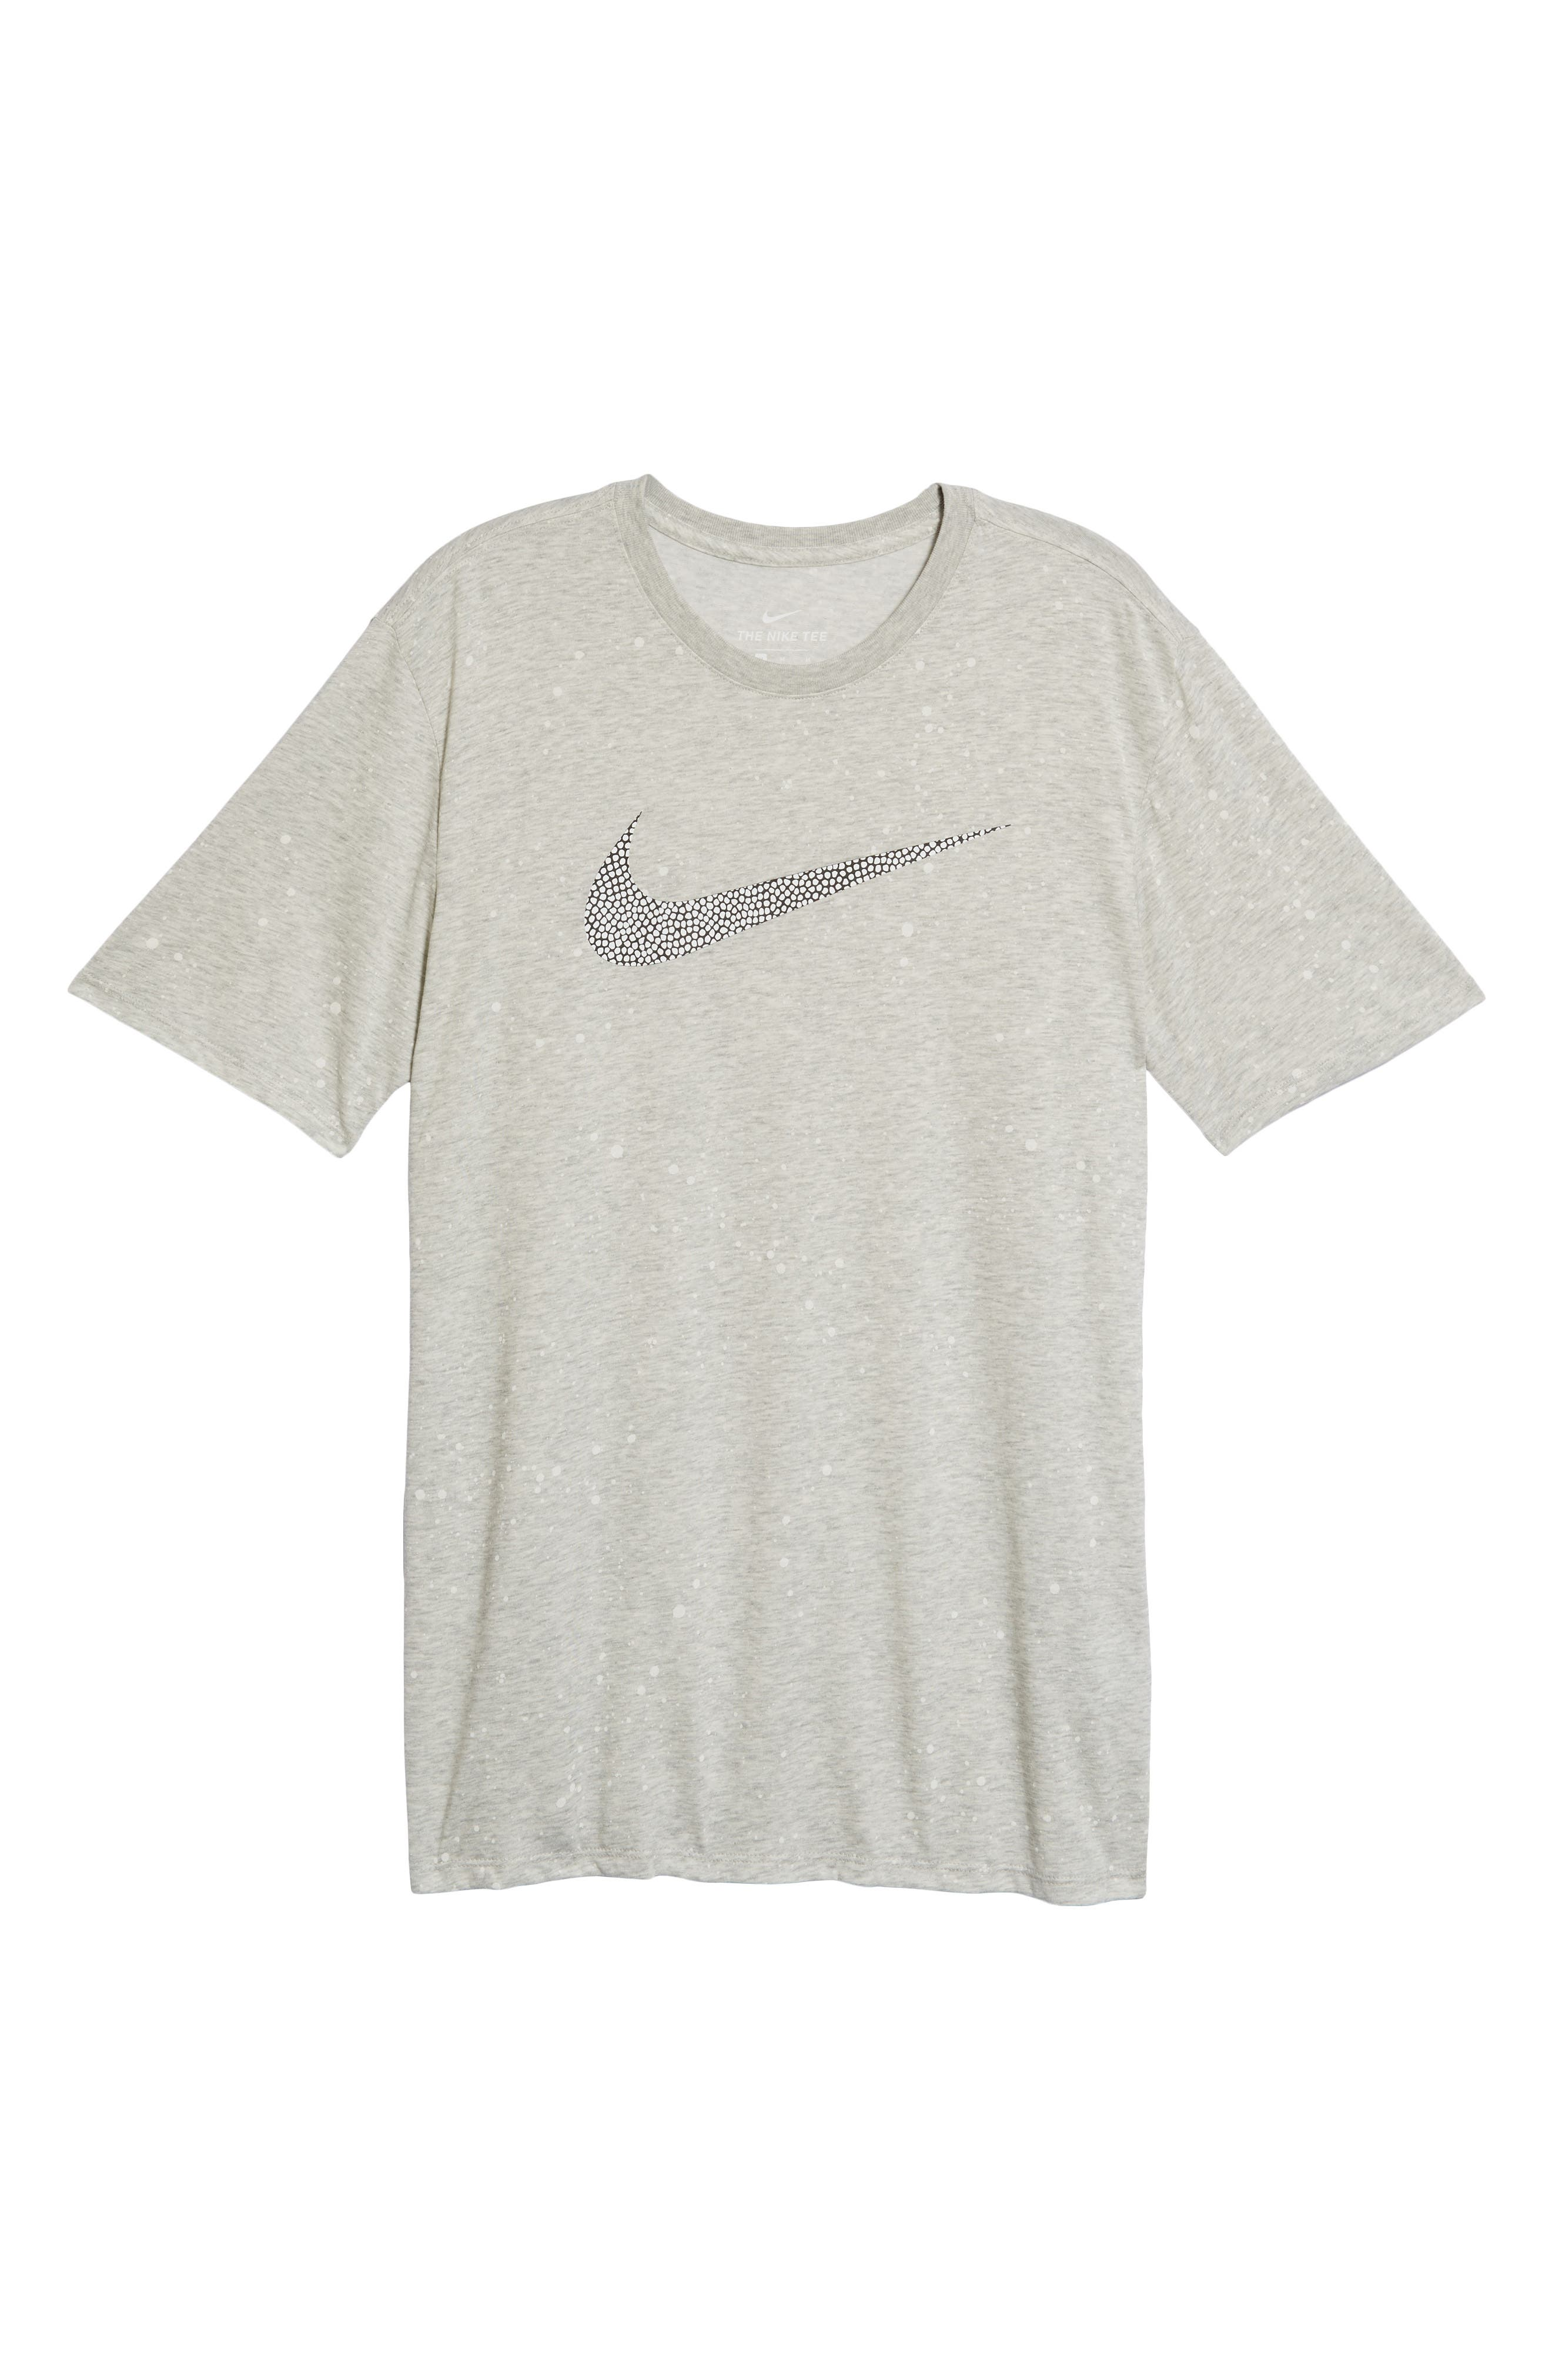 Dry T-Shirt,                             Alternate thumbnail 6, color,                             Grey Heather